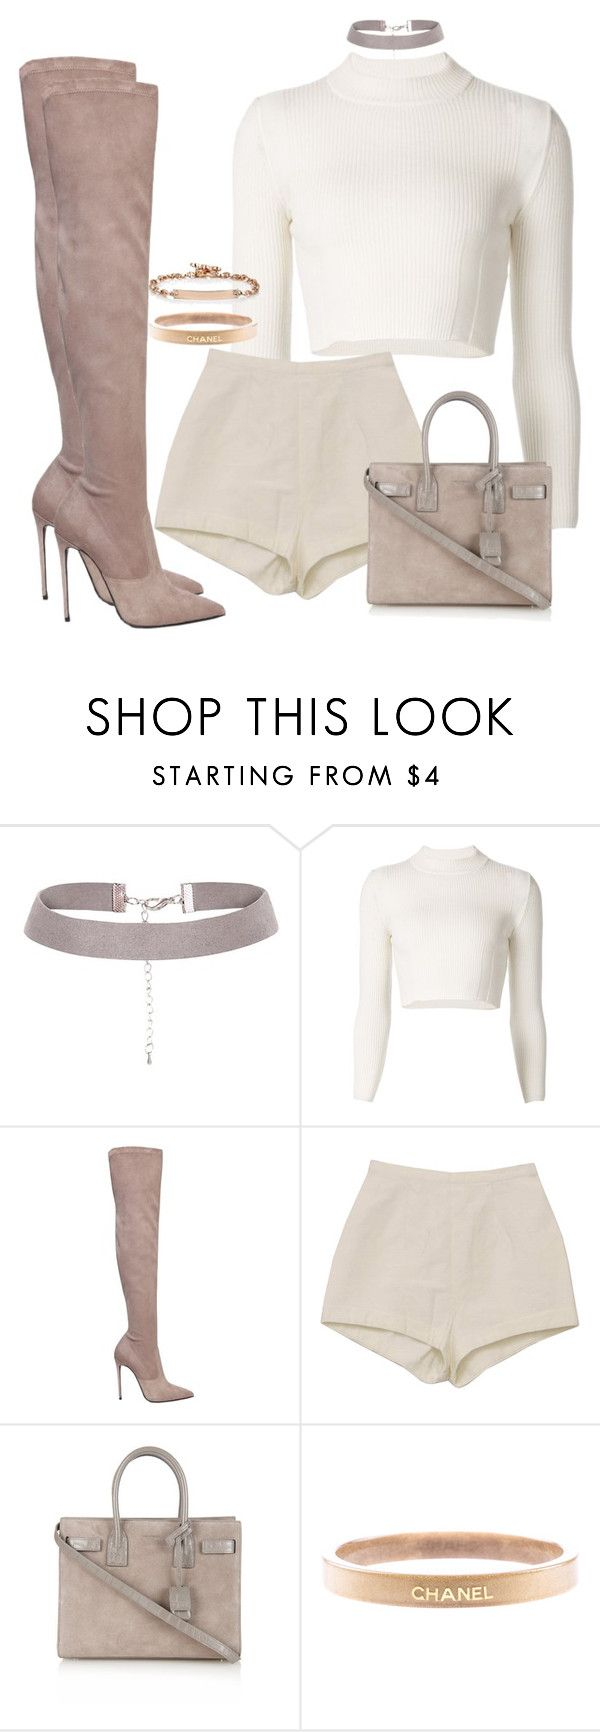 """Untitled #566"" by iloveivonne on Polyvore featuring Maison Margiela, Le Silla, Yves Saint Laurent, Chanel and Hoorsenbuhs"